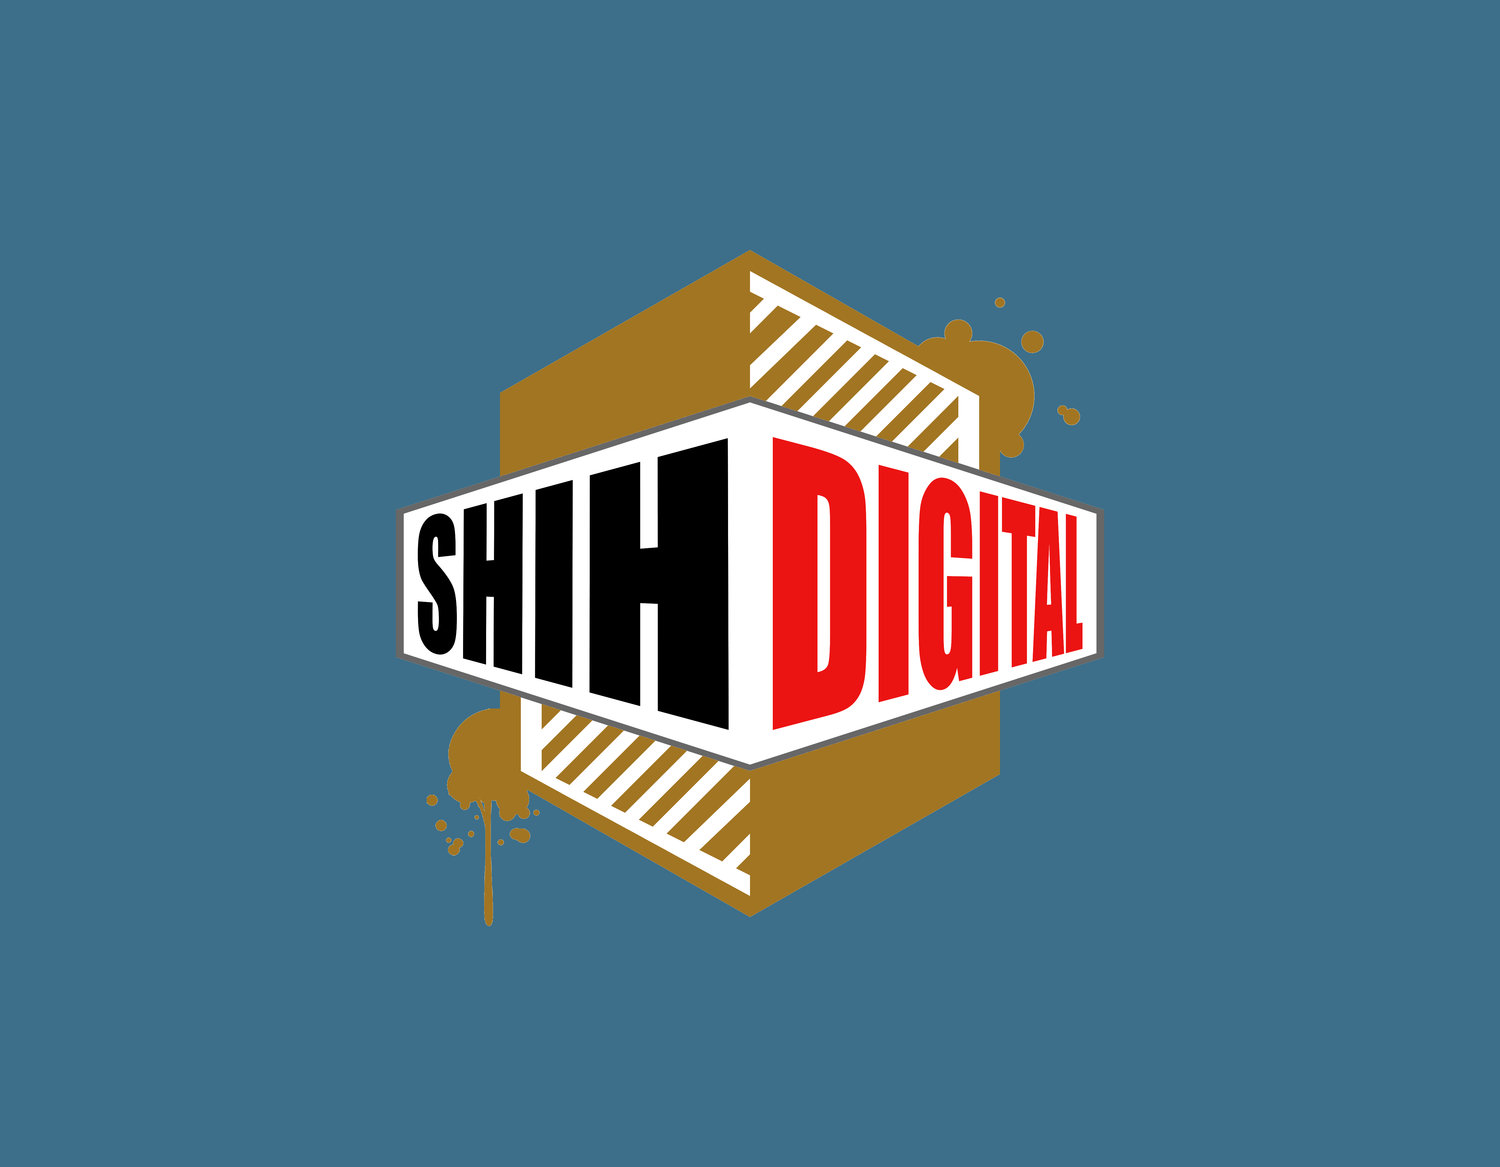 Shih Digital